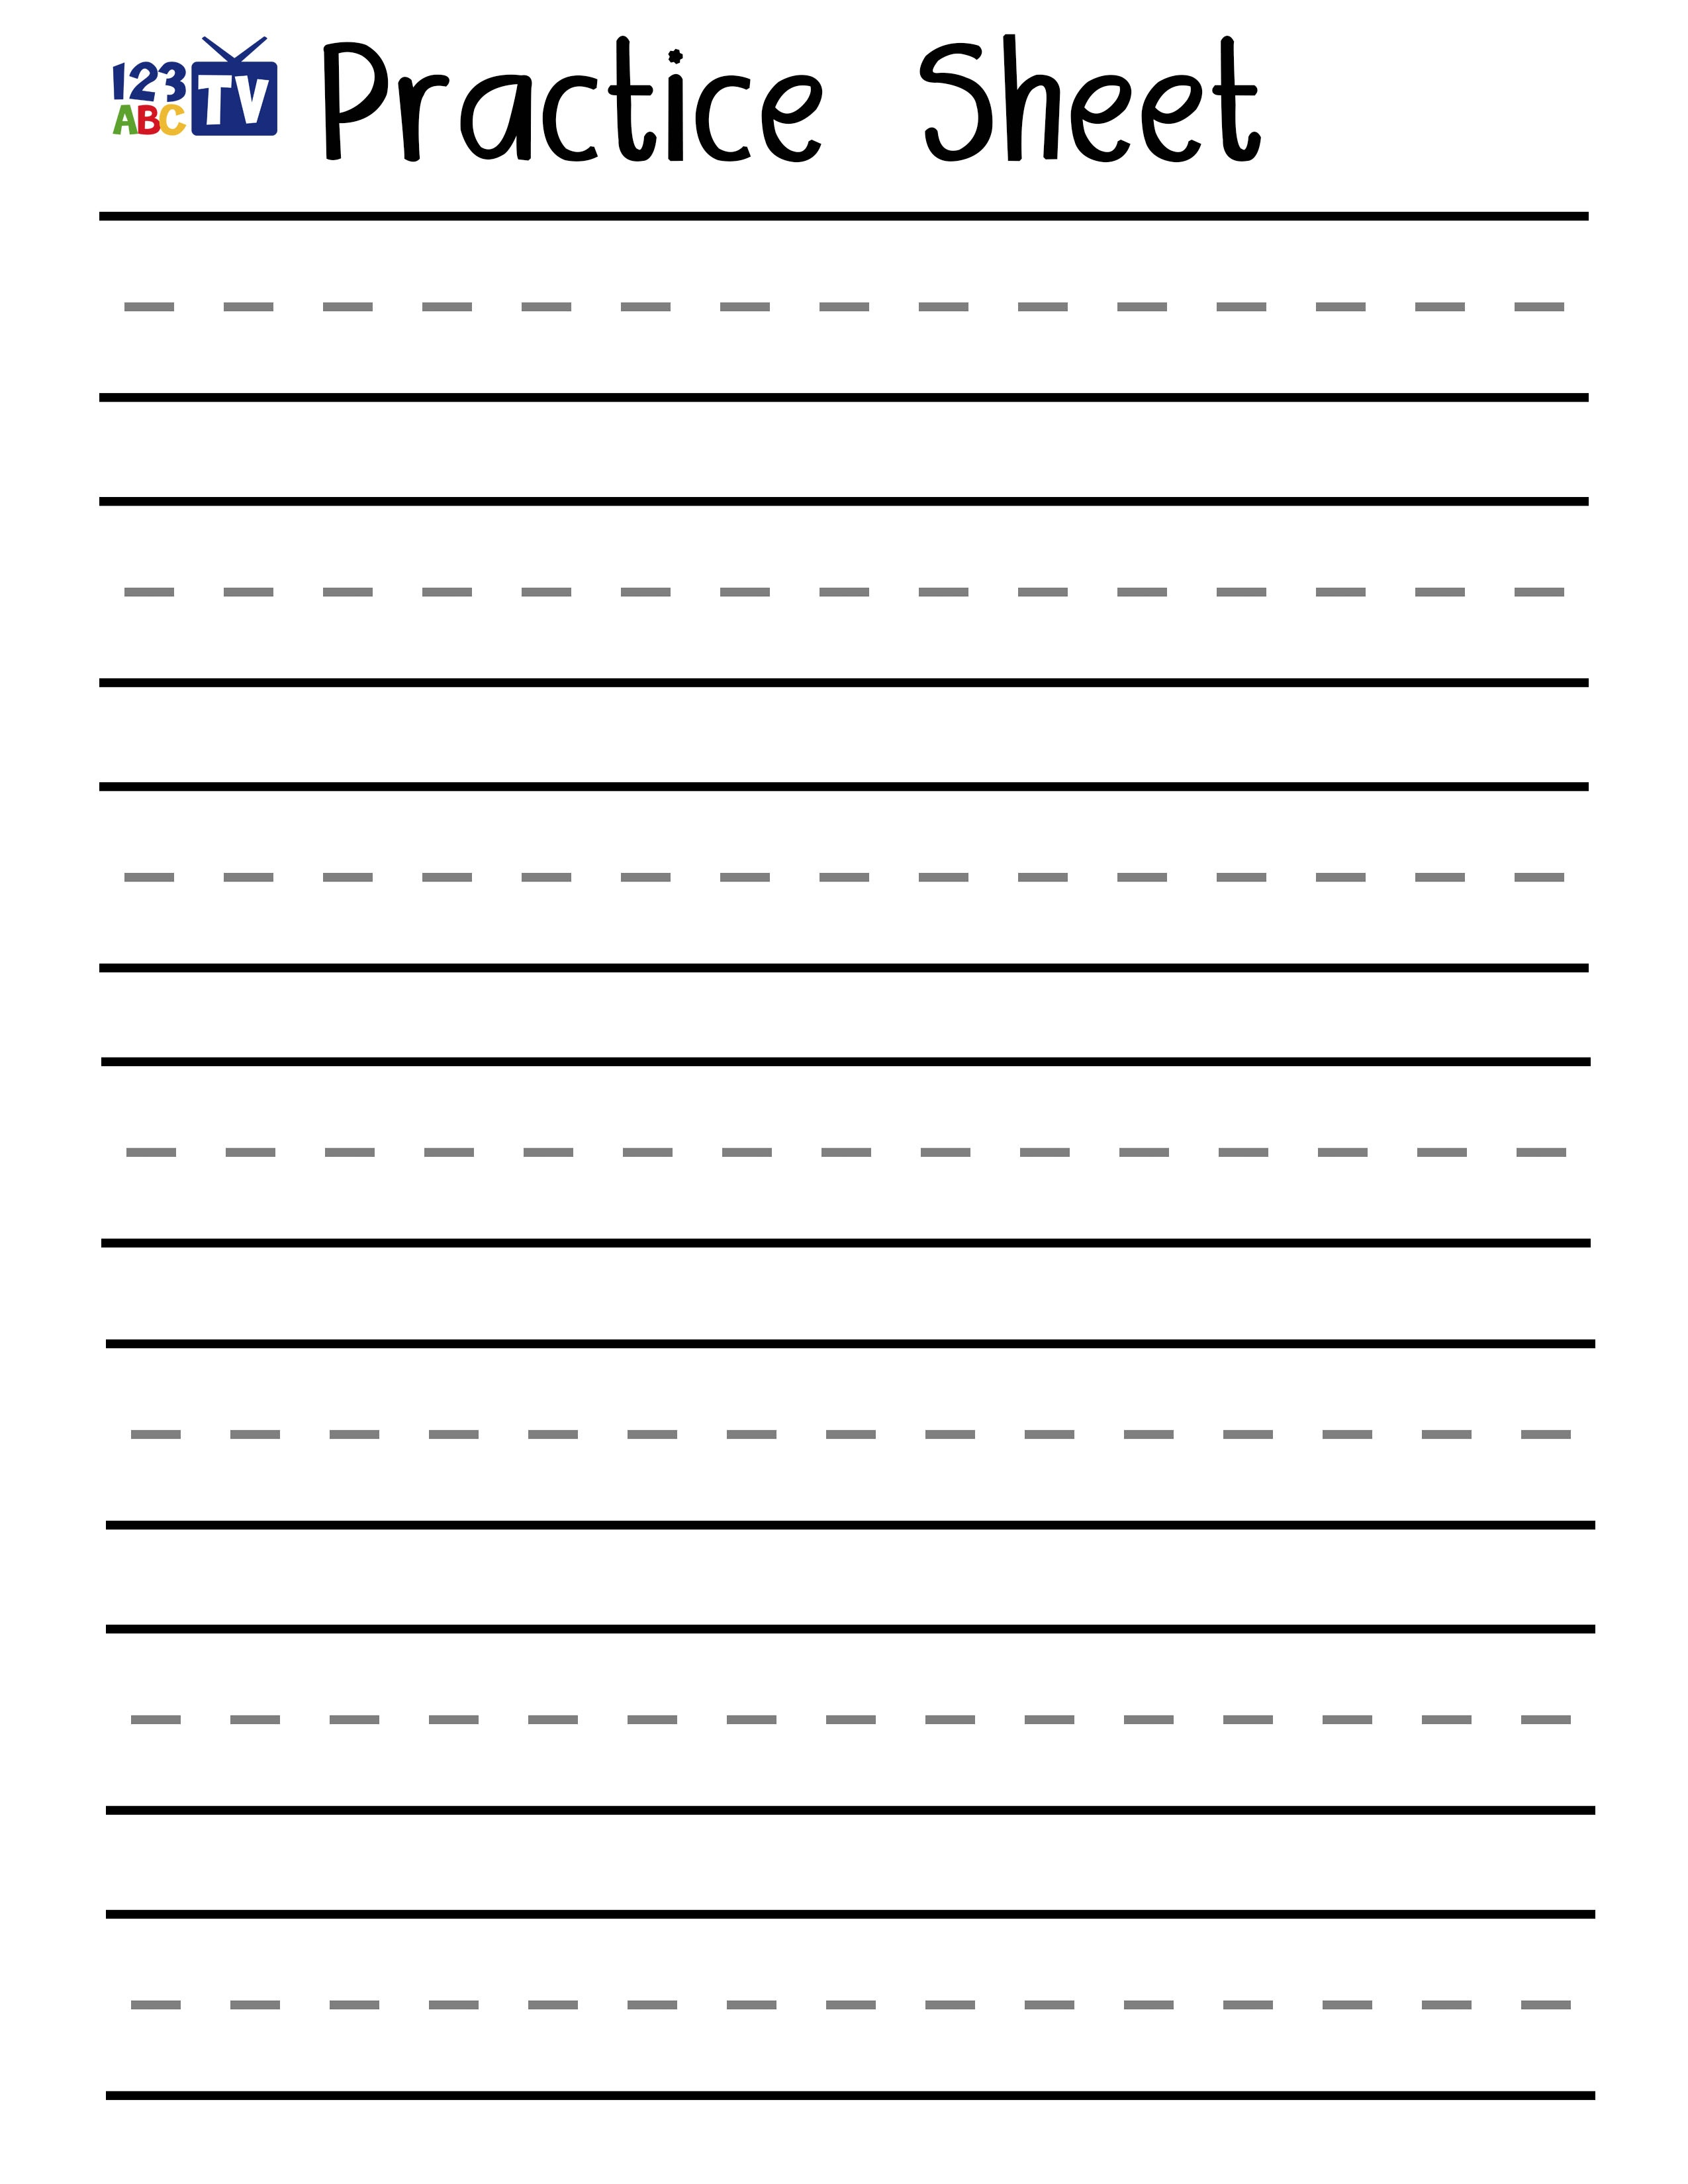 Letter A - Practice Handwriting Downloads | 123Abc Tv - Free Printable Practice Name Writing Sheets